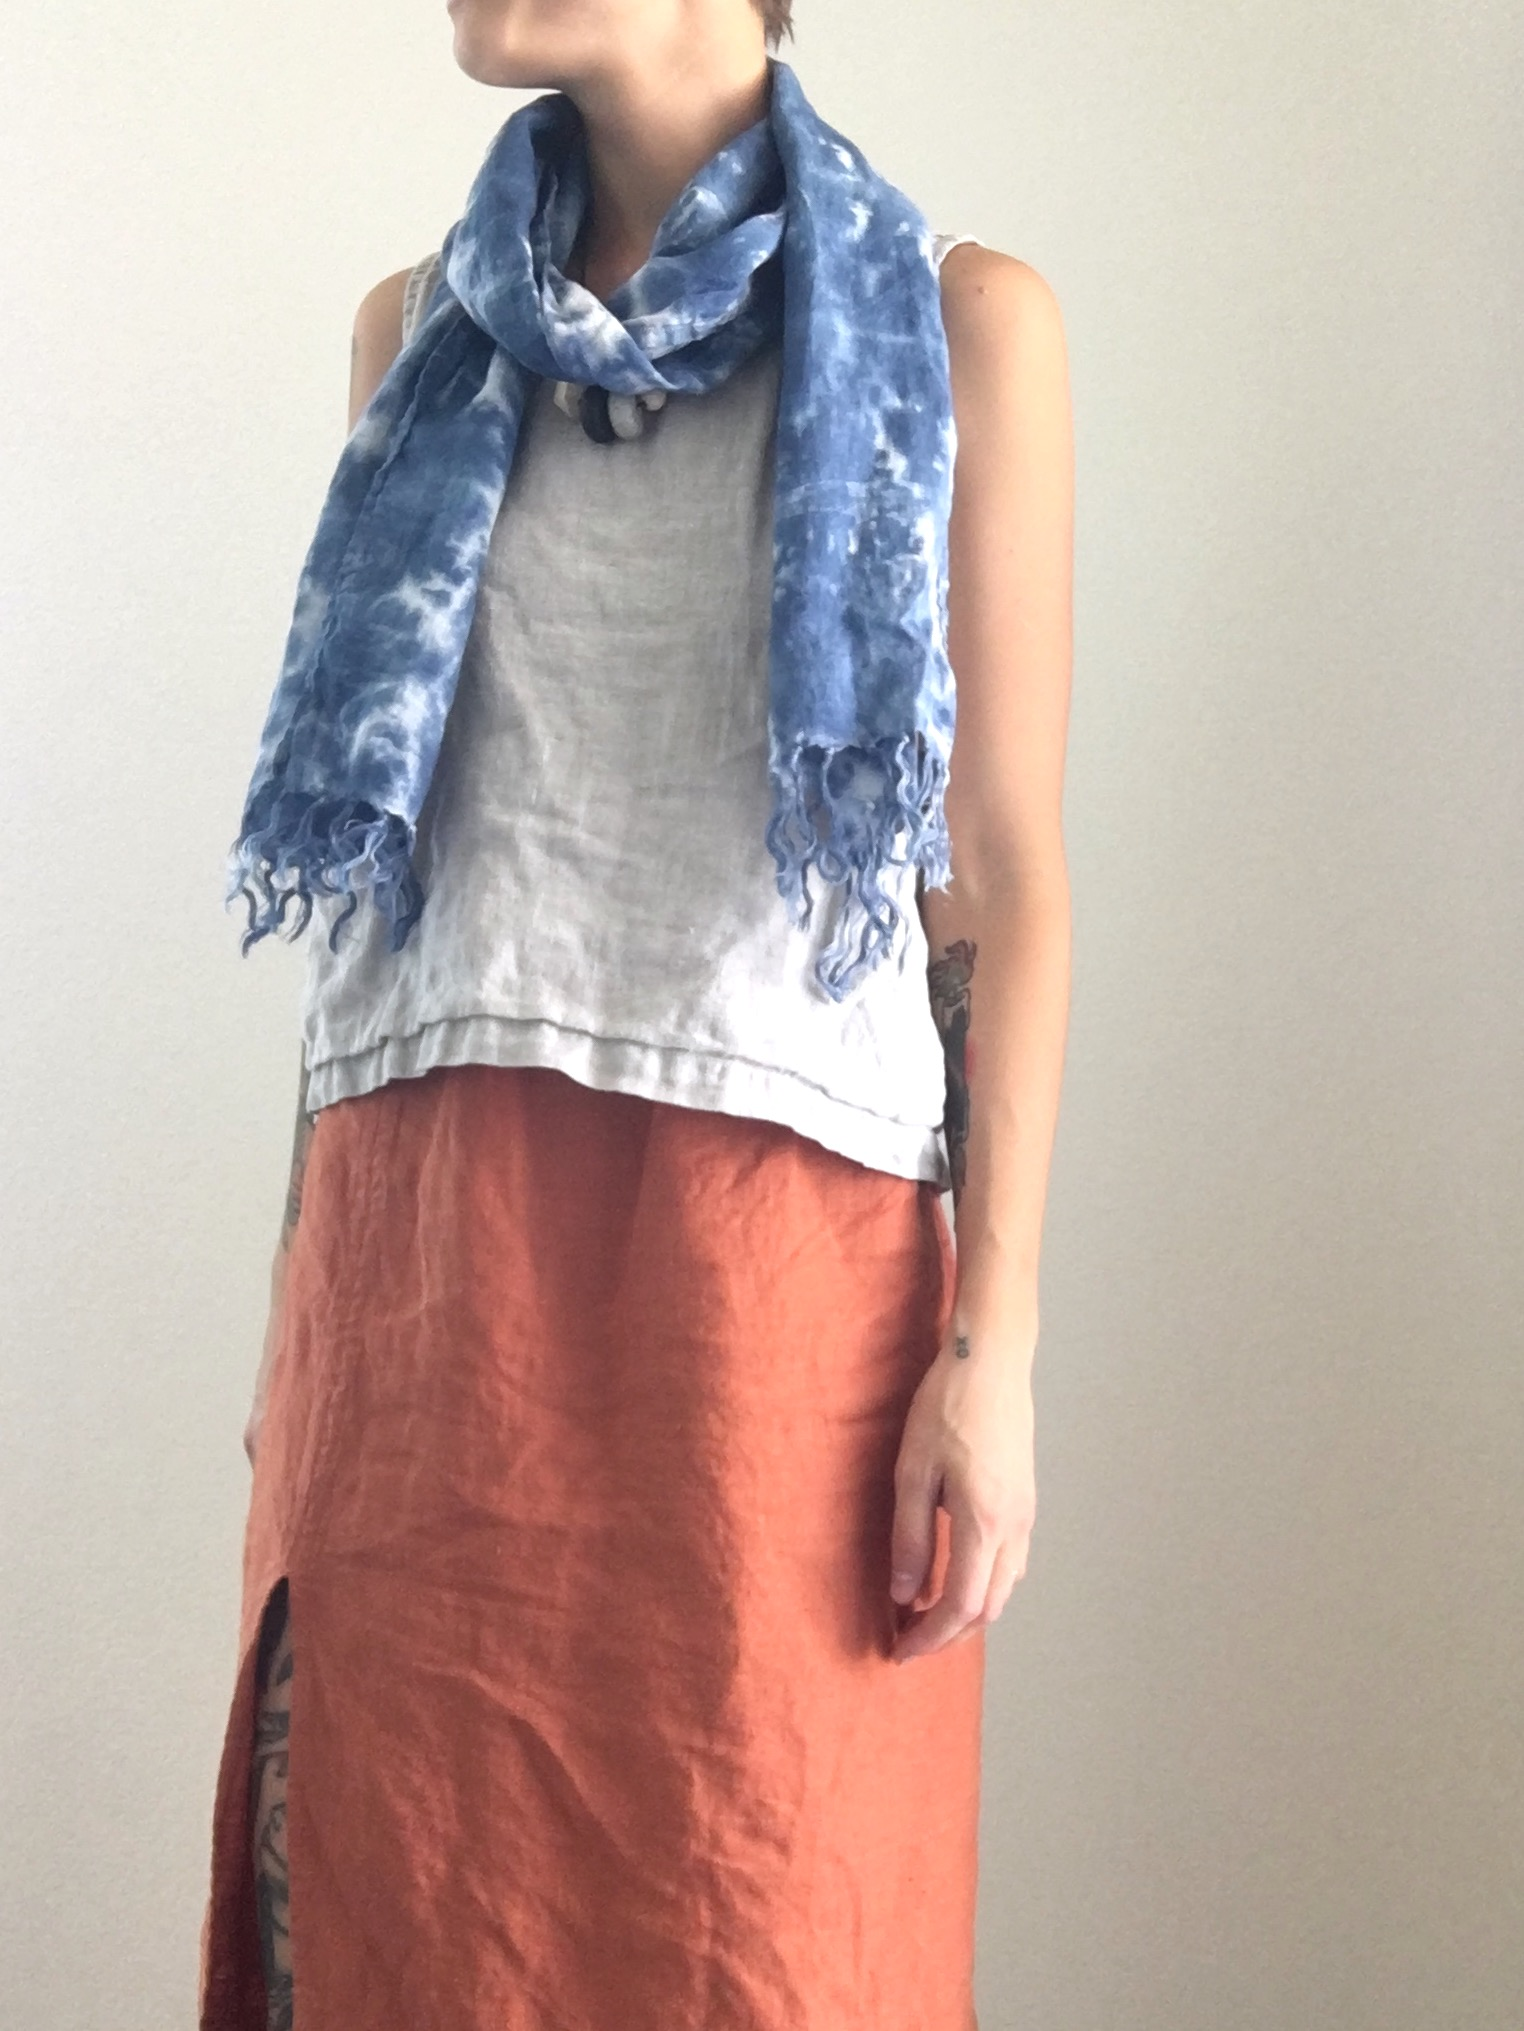 Sam, All Linen Outfit, Skirt: IL019 Rust, Top: IL019 Mix Natural, Scarf: IL020 Bleached hand dyed.